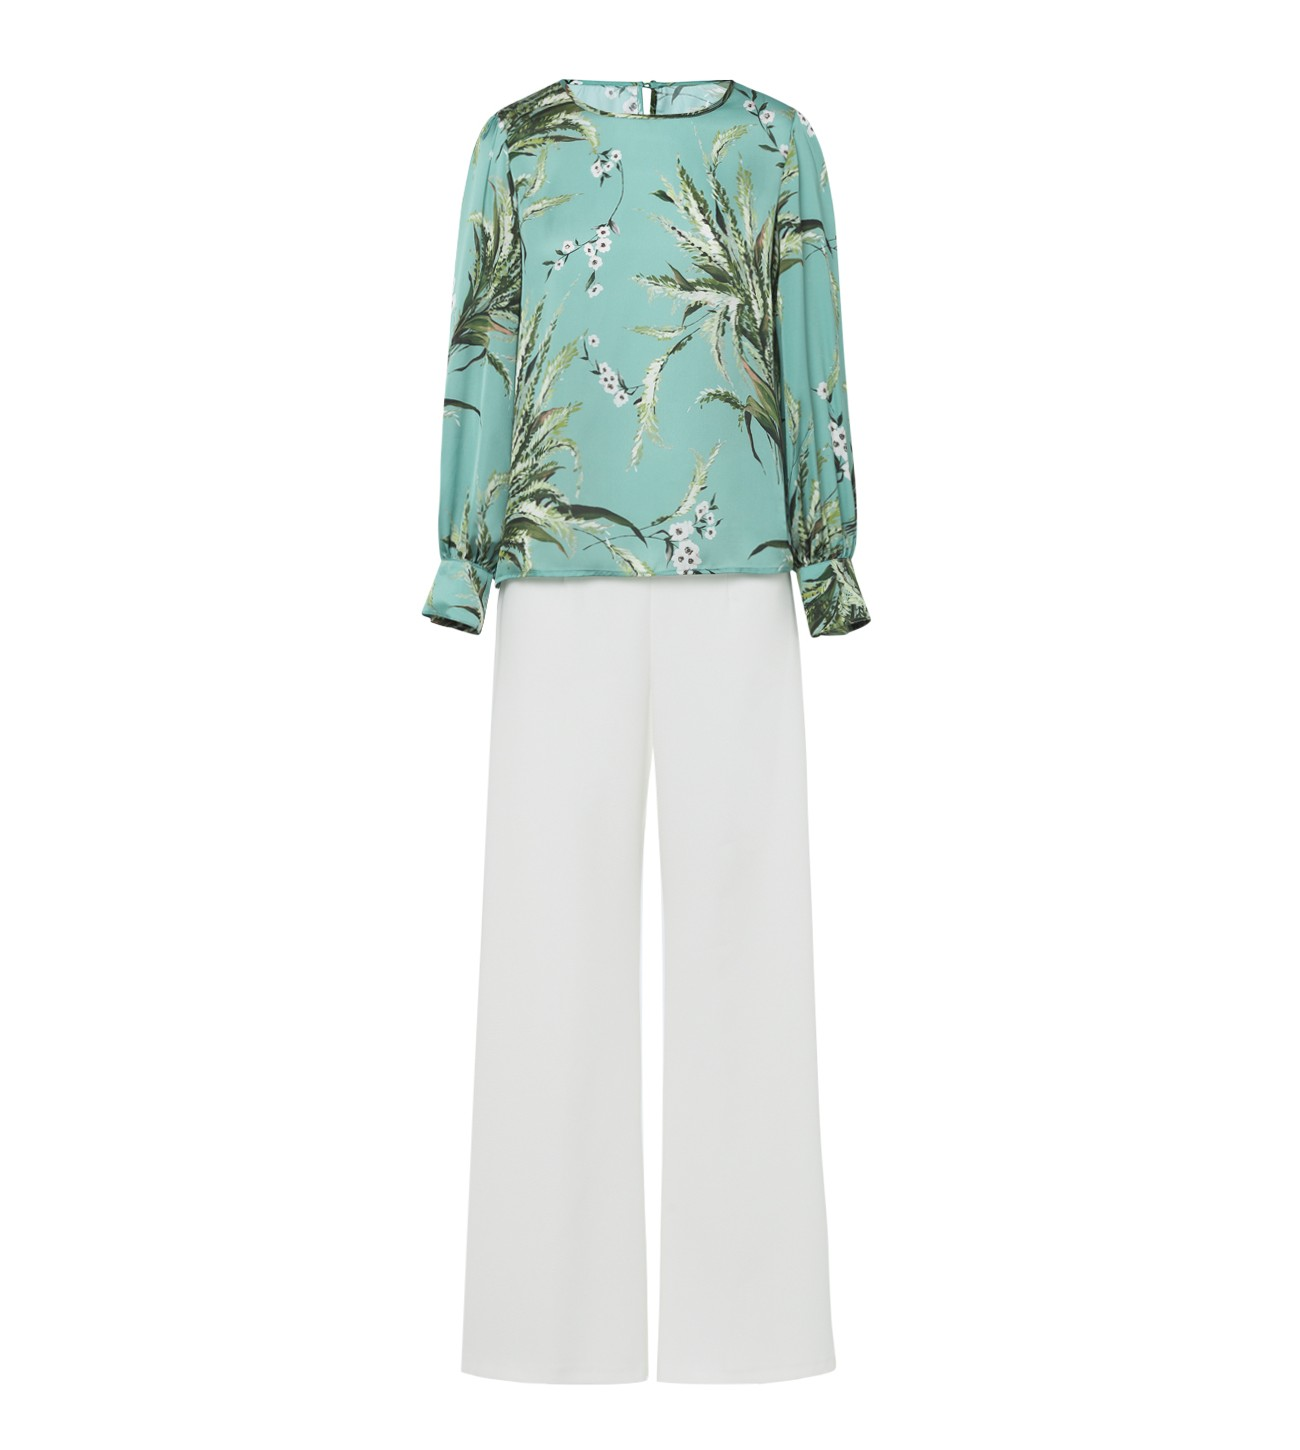 MATILDE_CANO_PRINTED_TOP_WITH_WIDE_LEG_TROUSERS_MARIONA_FASHION_CLOTHING_WOMAN_SHOP_ONLINE_6153